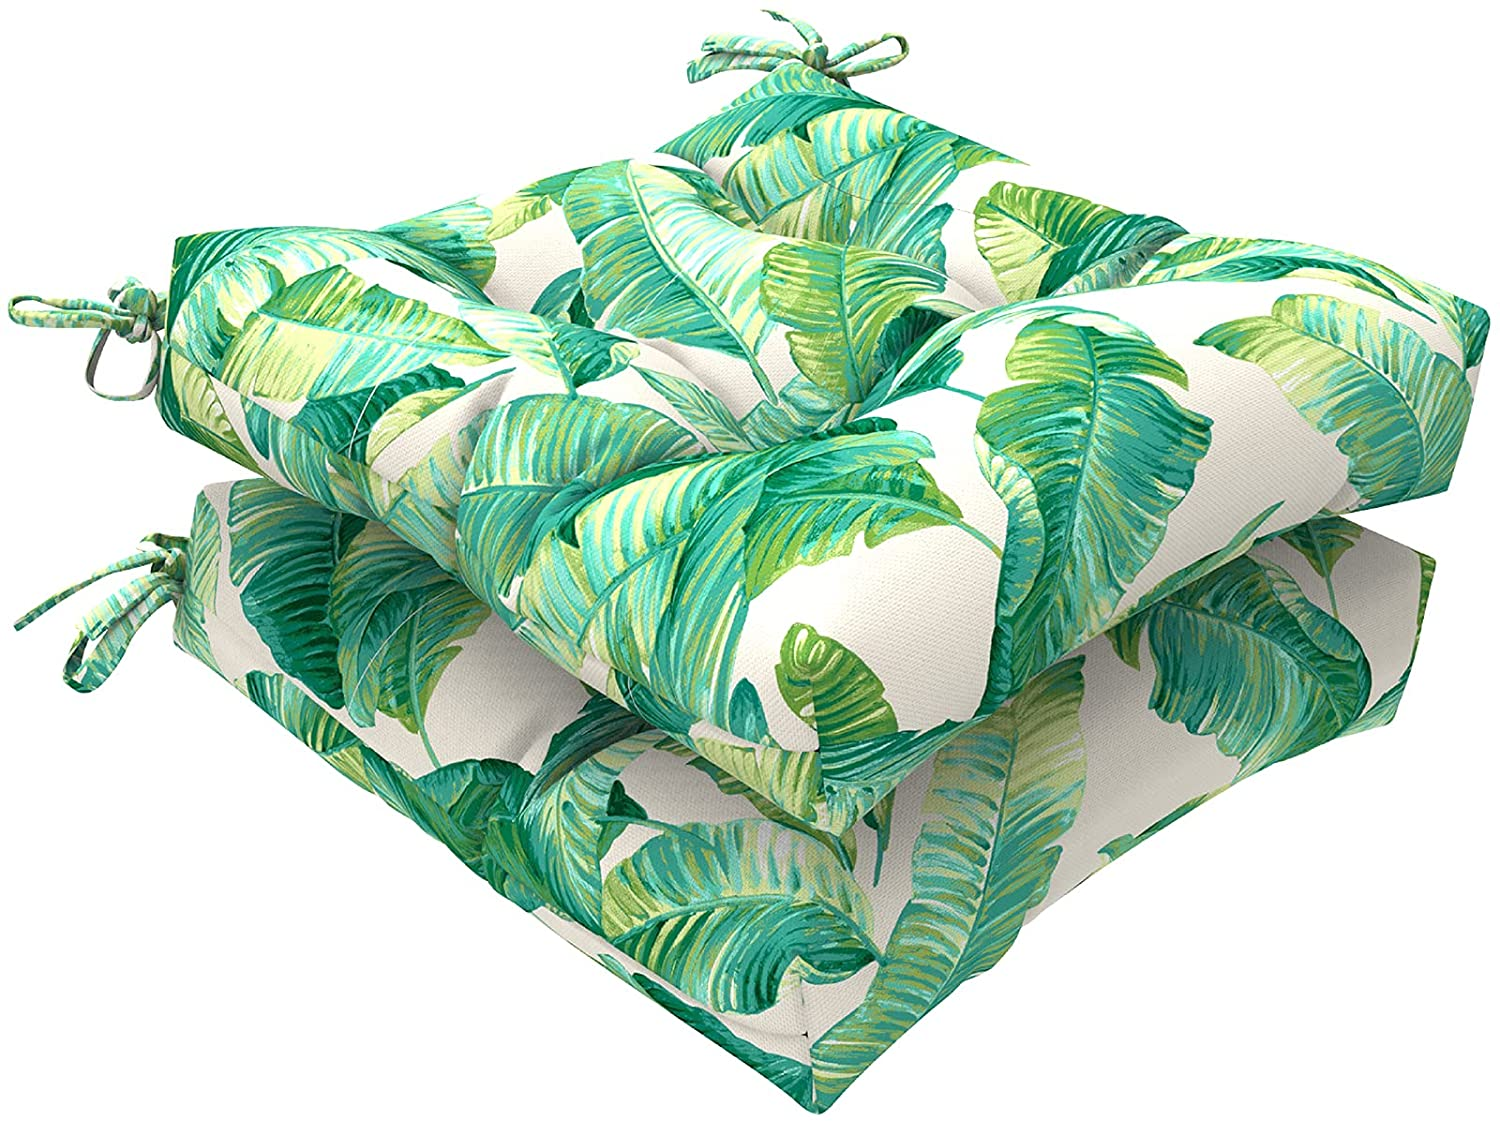 """LVTXIII Indoor/Outdoor Square Tufted Wicker Seat Cushions Pack of 2, Patio Decorative Thick Chair Pads Seat Cushions Set for Patio Garden Home, 19""""x19""""x5"""", Swaying Palms Capri"""